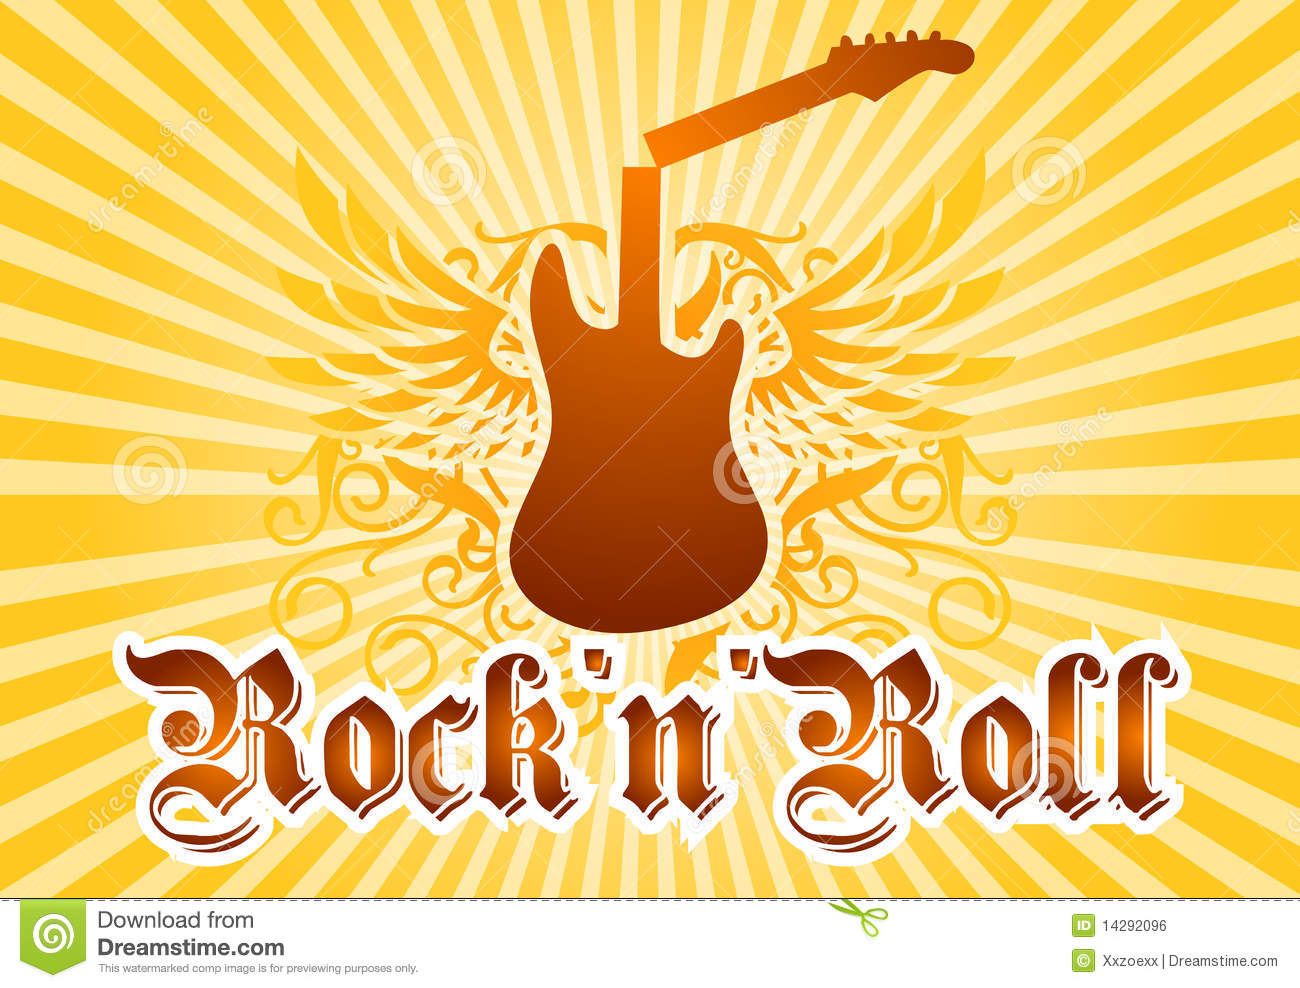 Rock And Roll Cool Background Royalty Free Stock Image - Image ...